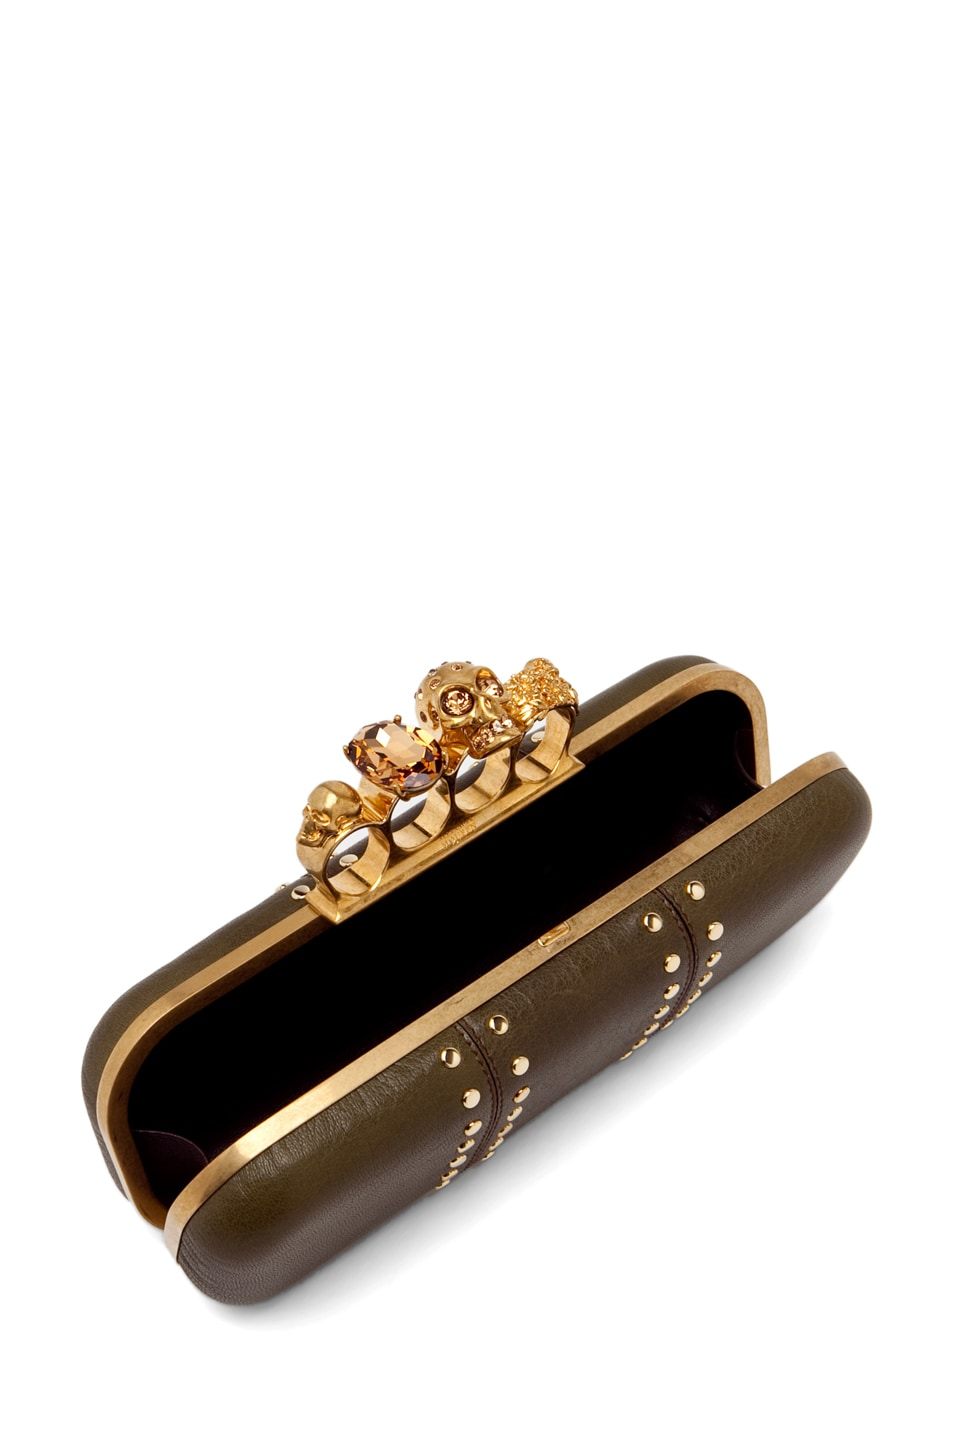 Image 5 of Alexander McQueen Knuckle Box Clutch in Olive Green